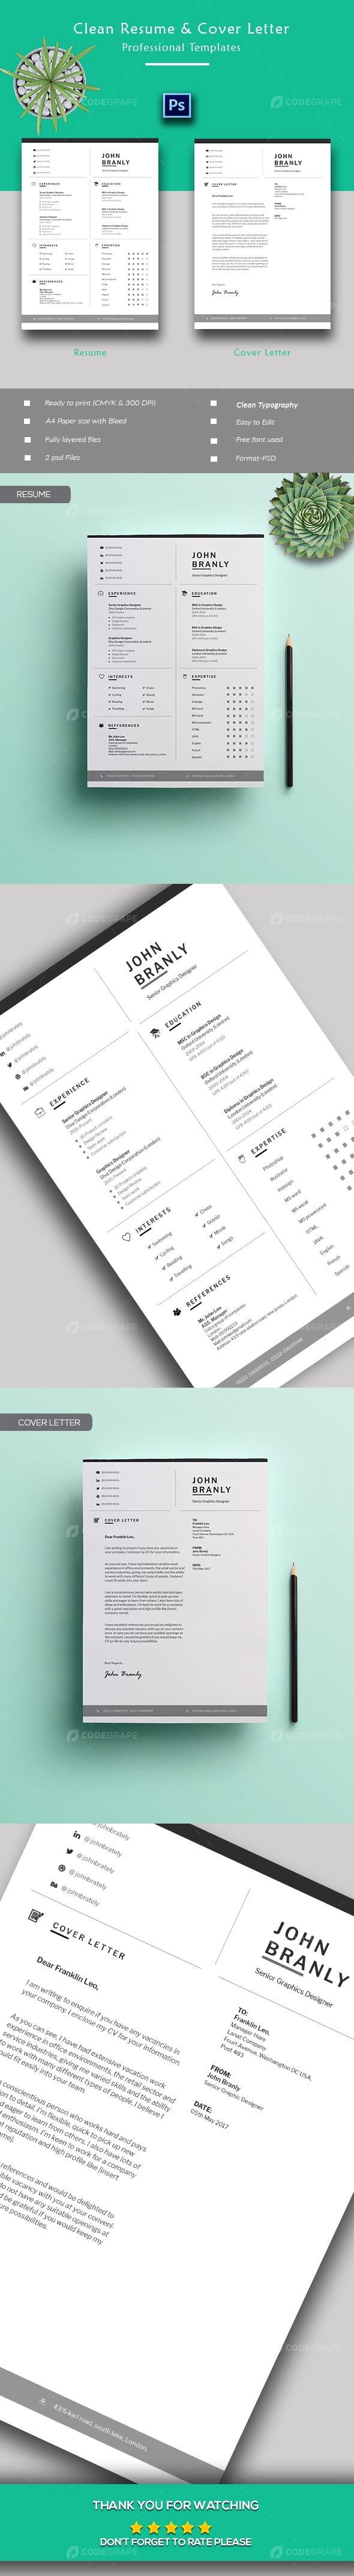 Creative Resume + Cover Letter Template